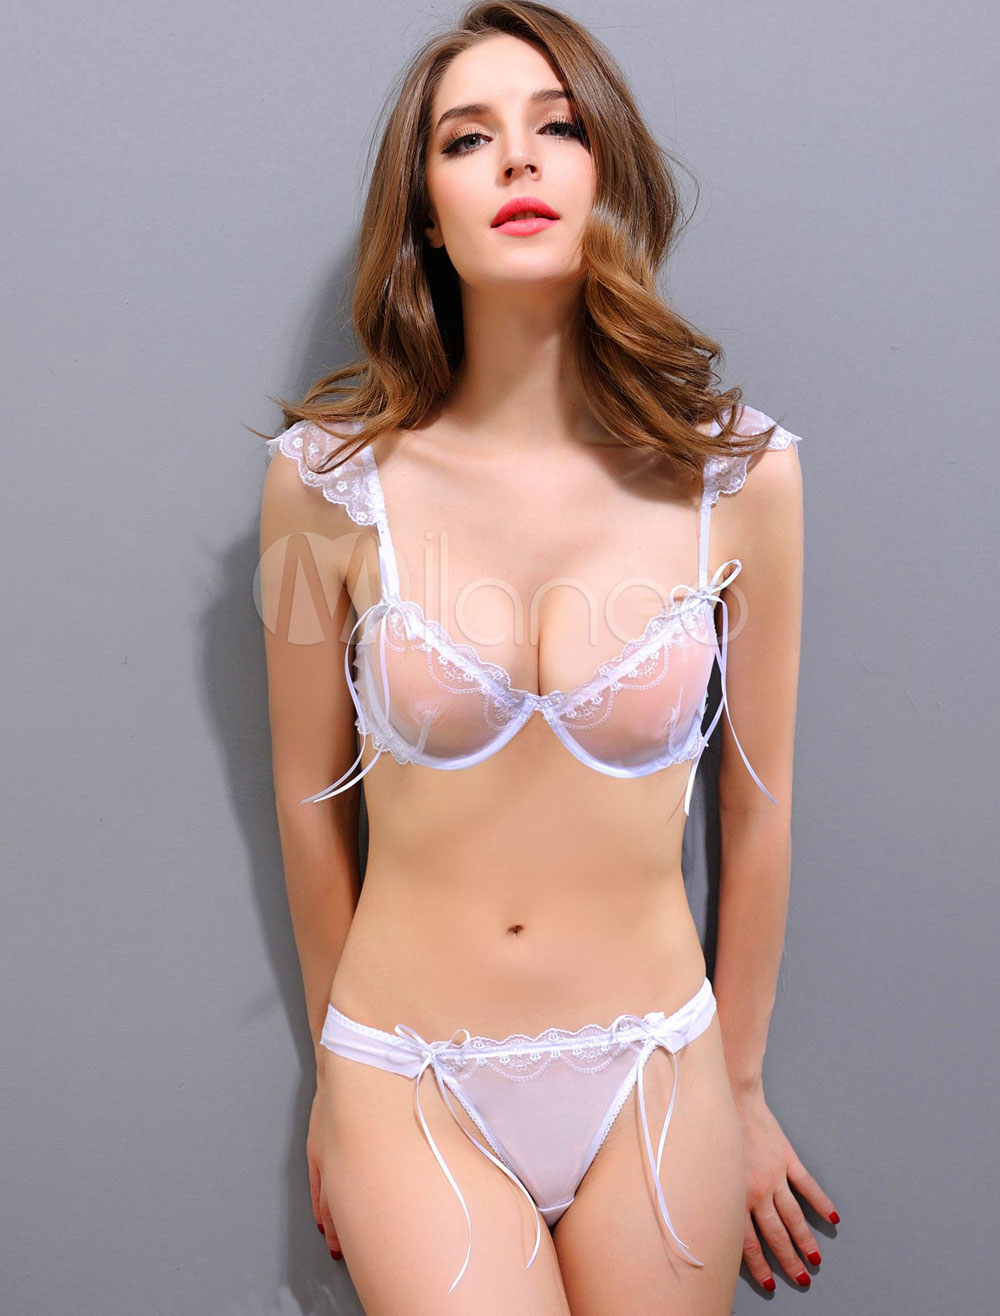 Agree with girls in sheer bra and panties can